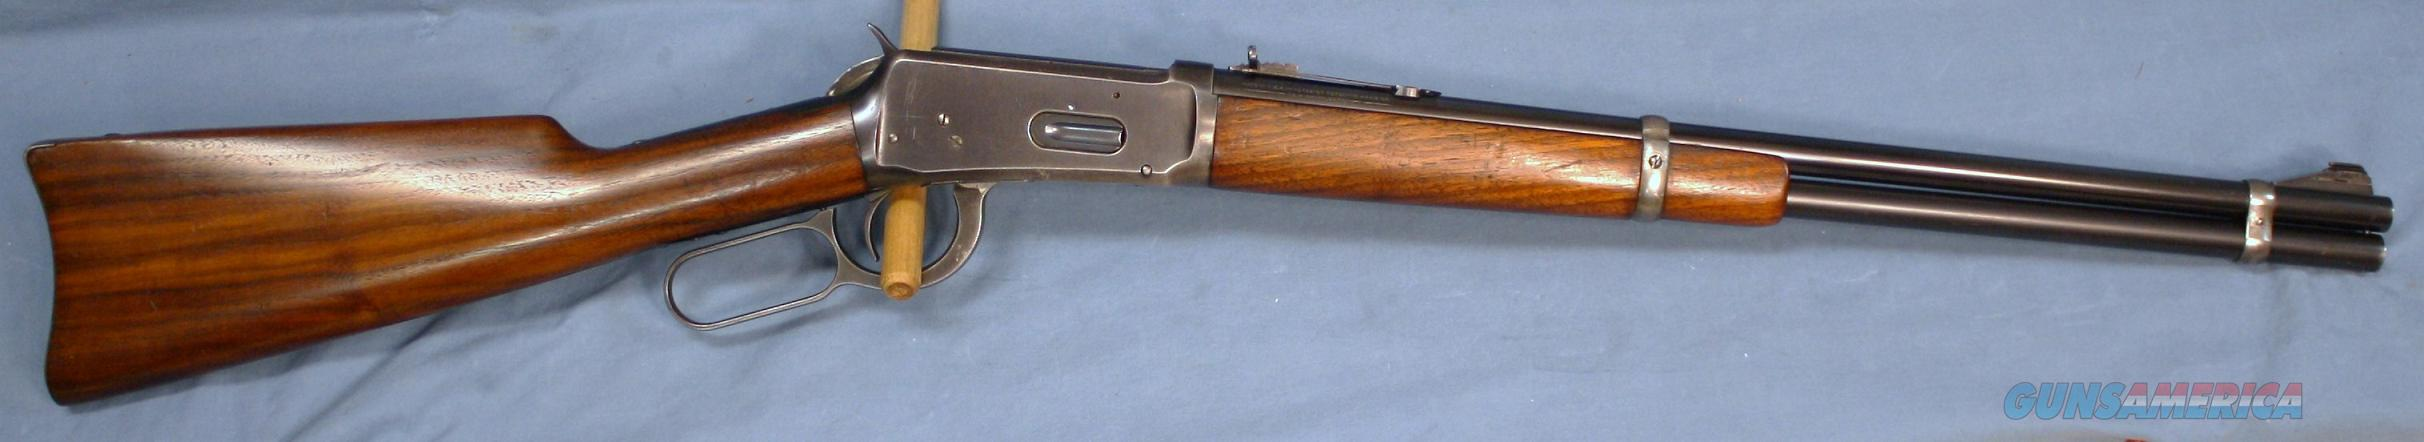 Winchester Model 94 Top-Eject Lever Action Carbine .32 Win Special Made in 1936  Guns > Rifles > Winchester Rifles - Modern Lever > Model 94 > Pre-64